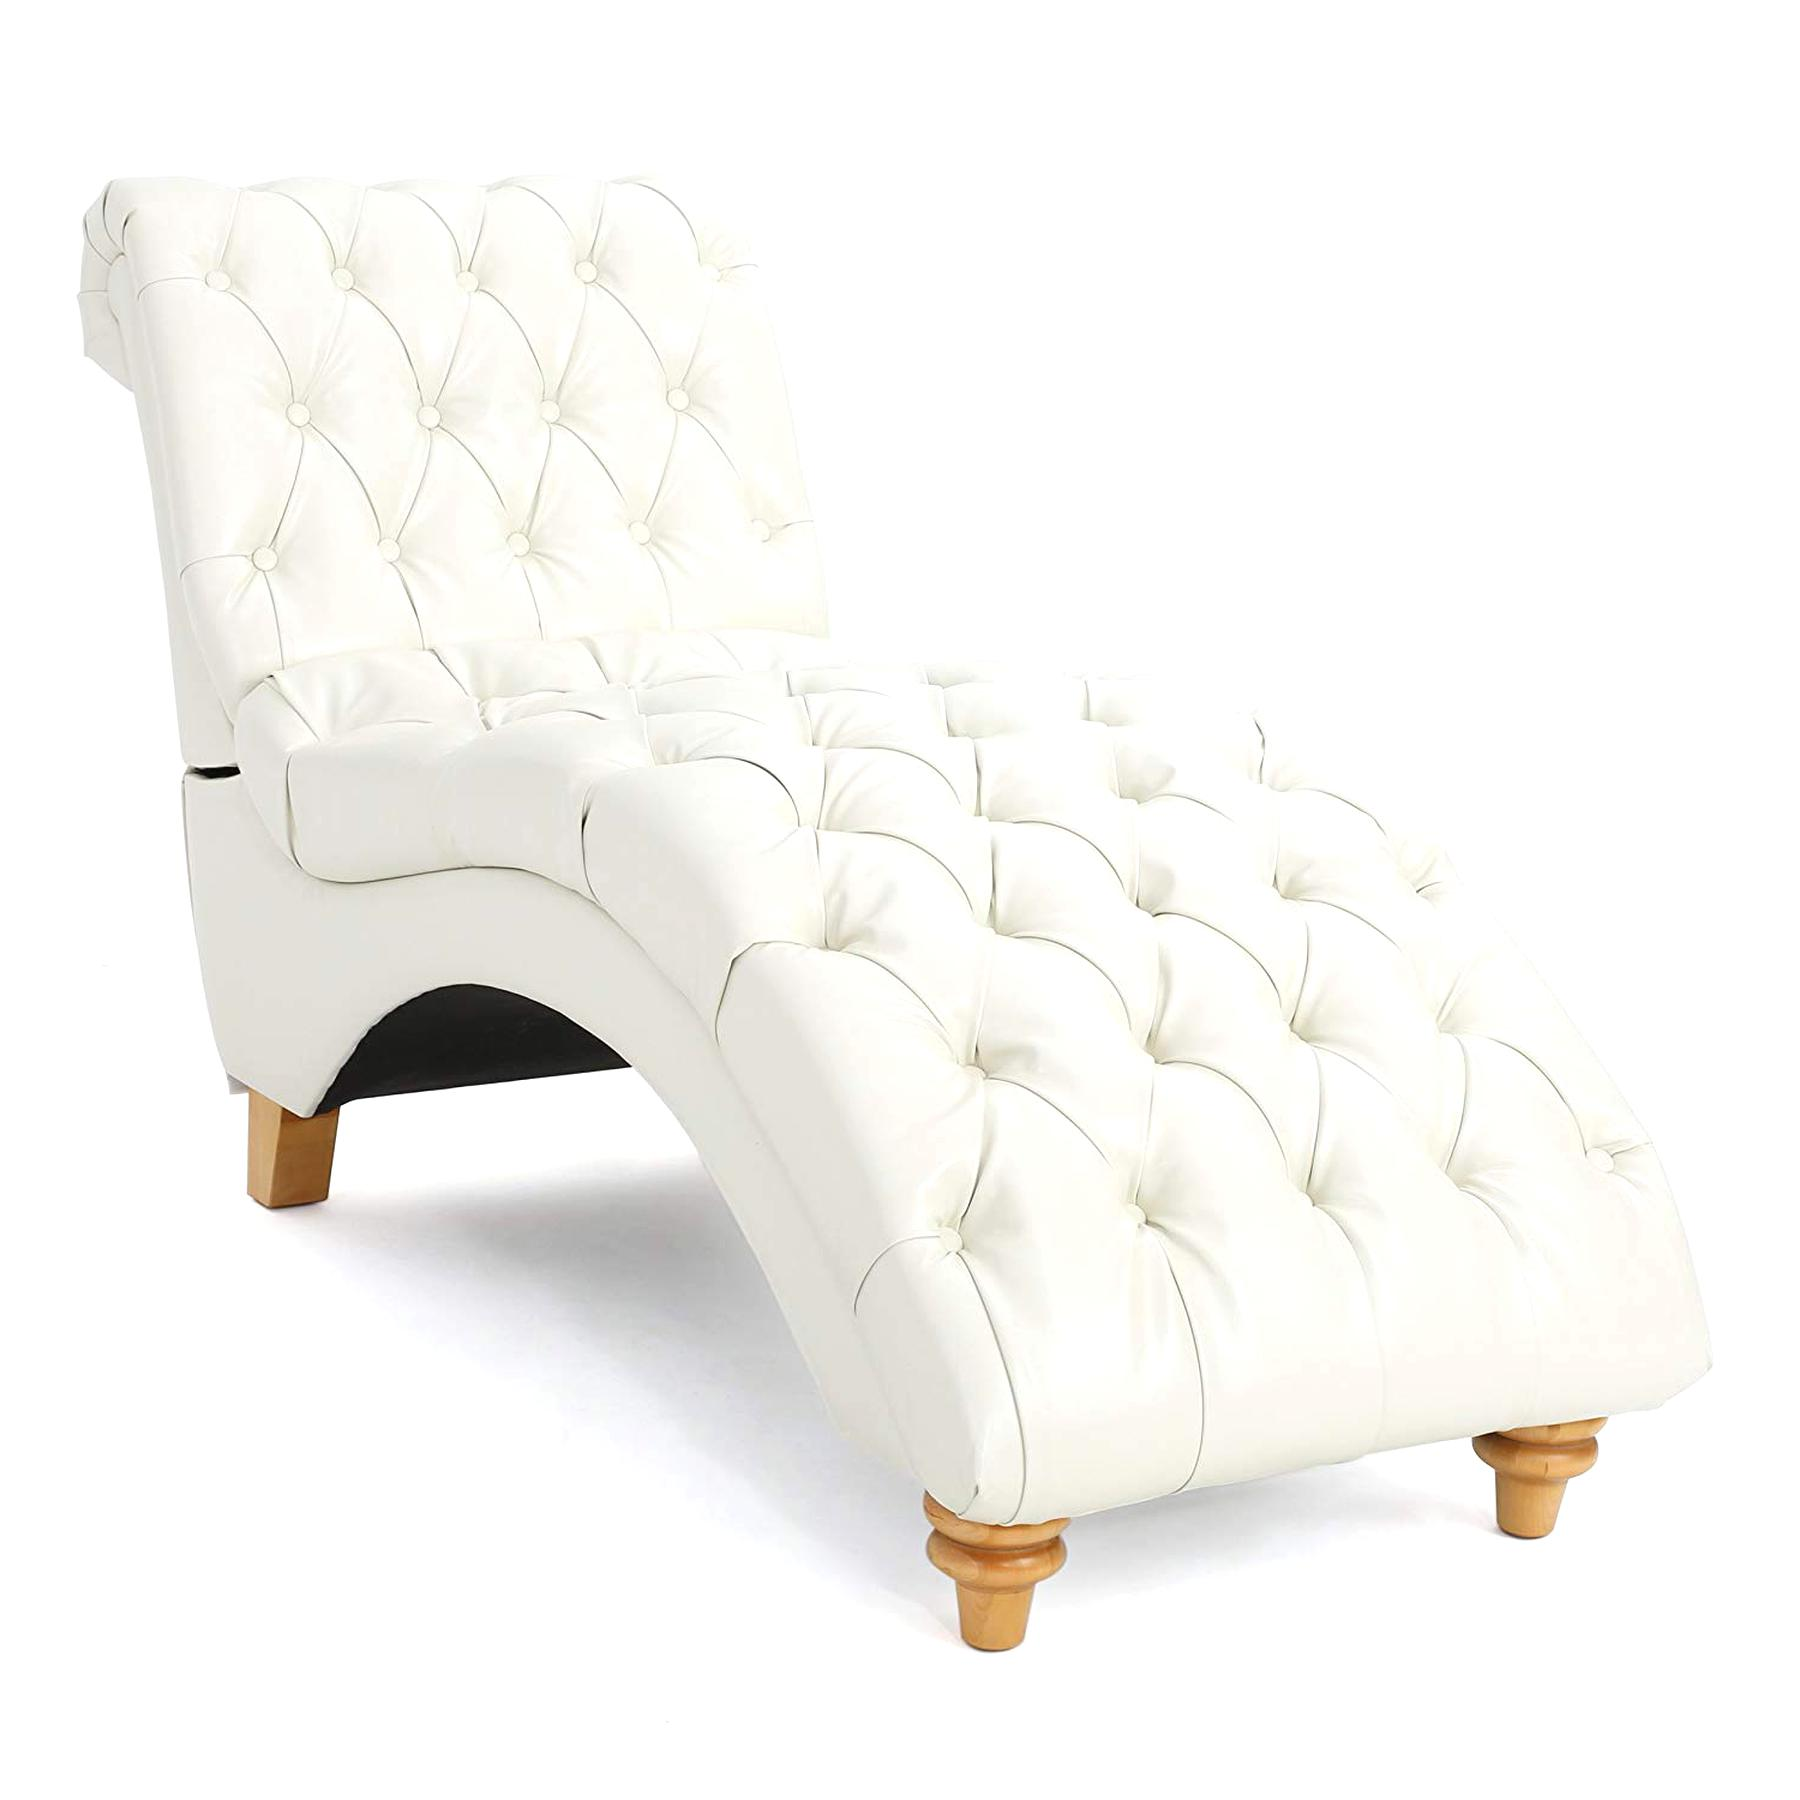 Incredible Chaise Lounge Chair For Sale Only 3 Left At 75 Creativecarmelina Interior Chair Design Creativecarmelinacom